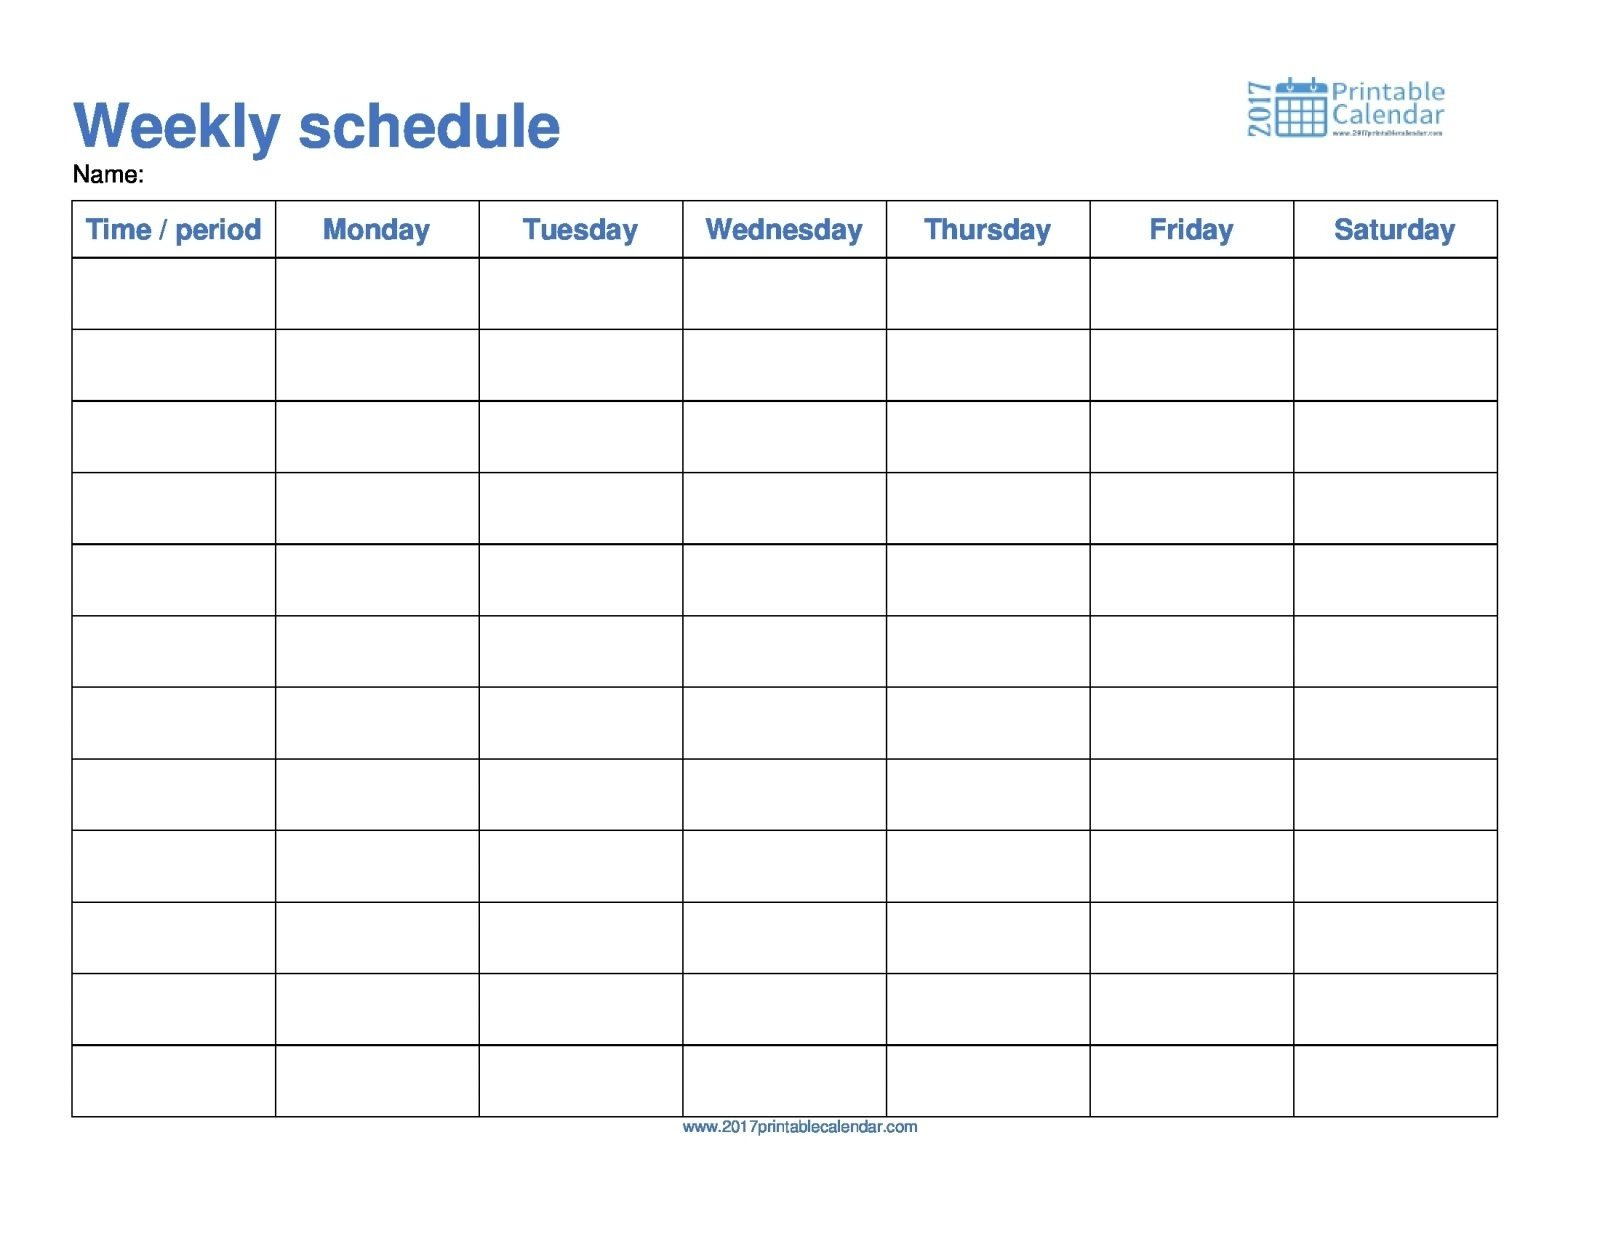 Monday Though Friday Timed Schedule - Calendar Inspiration Word Calendar Template Monday Through Friday